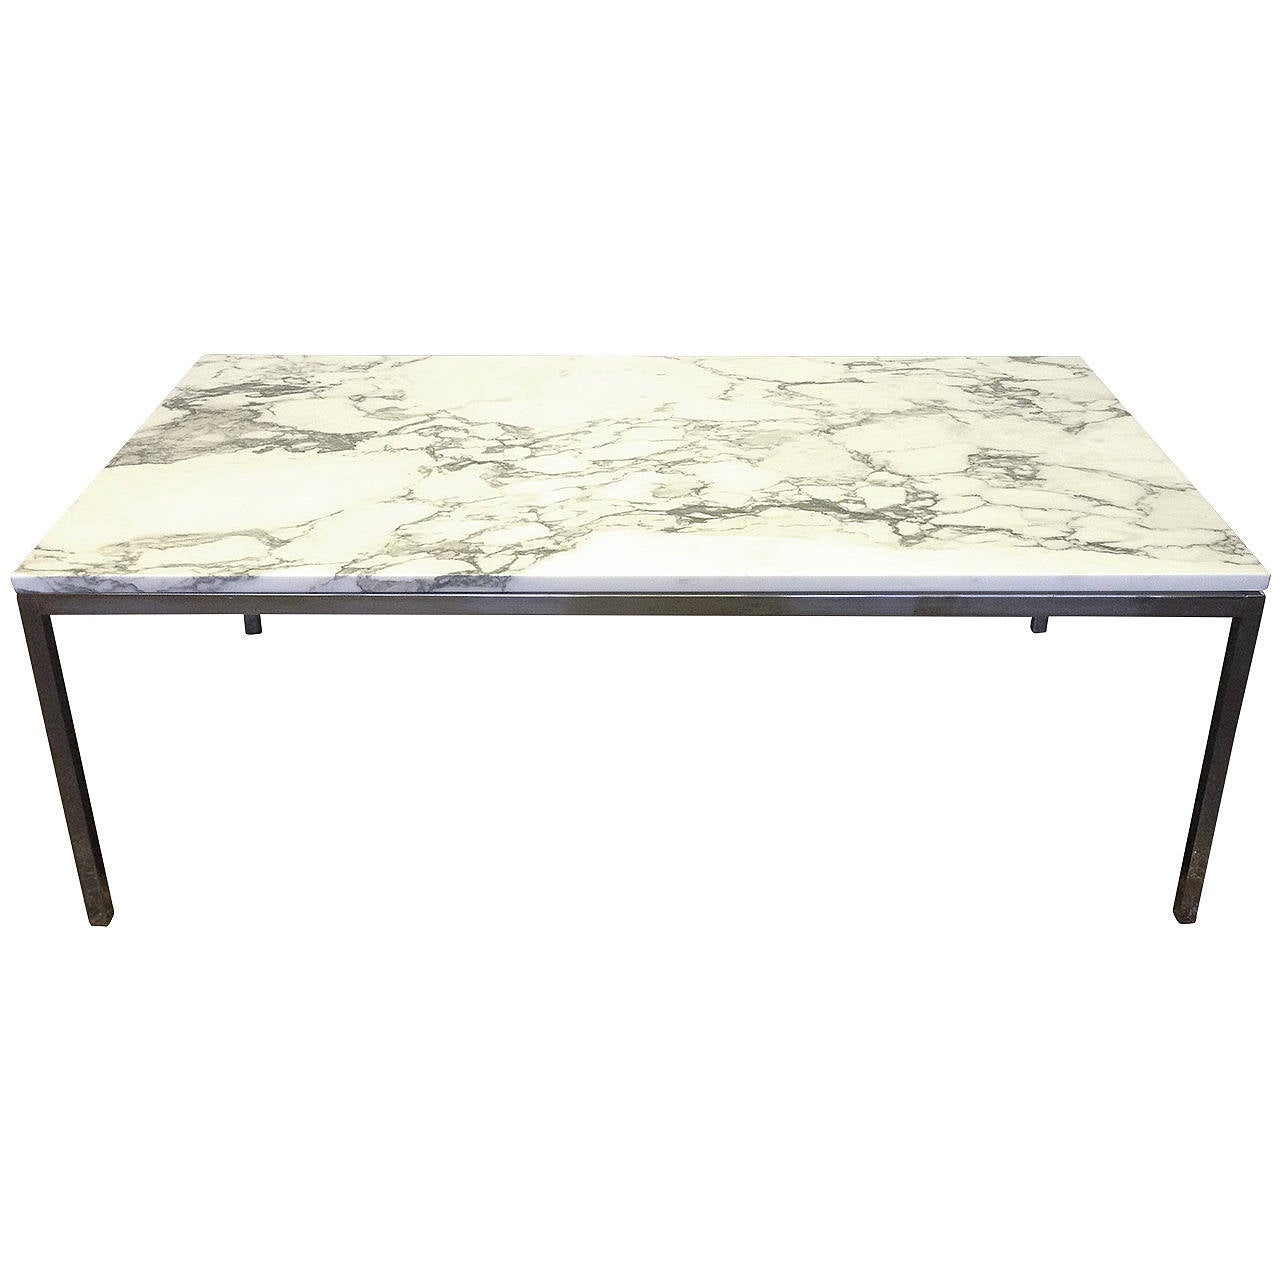 Florence knoll coffee table in white marble at 1stdibs White marble coffee table